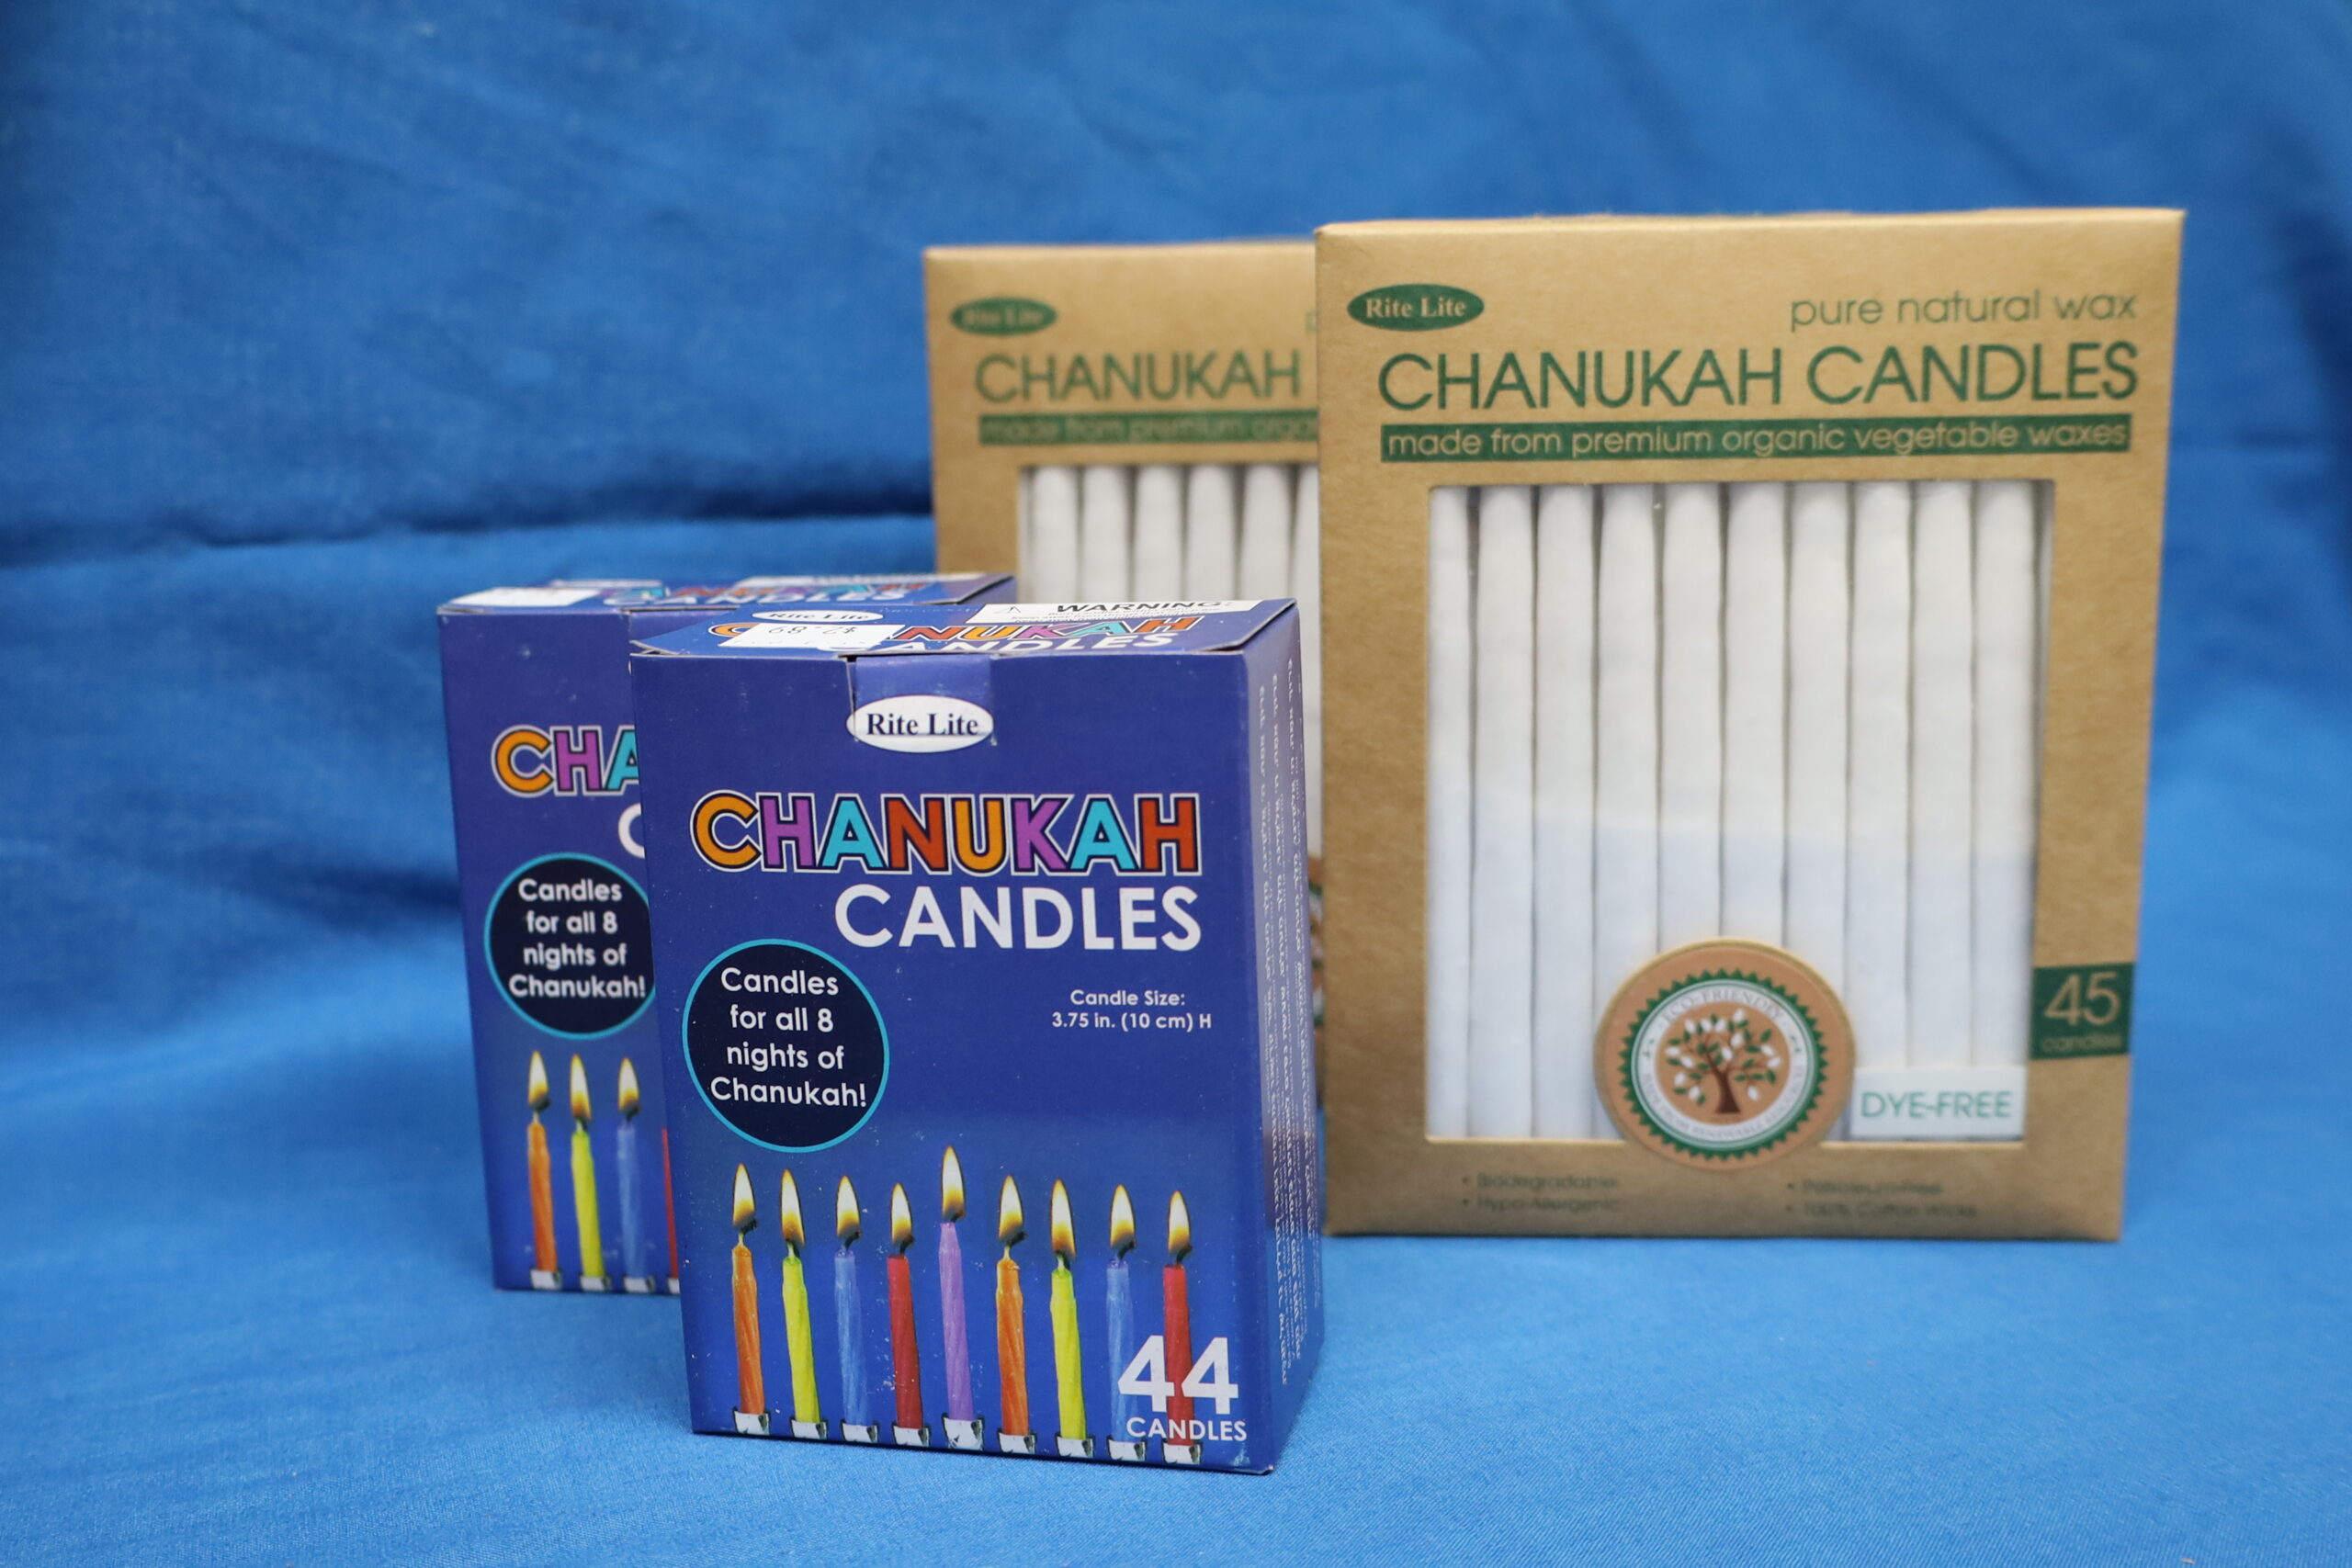 White Candles $12/box Multicolored Candles $2.89/box